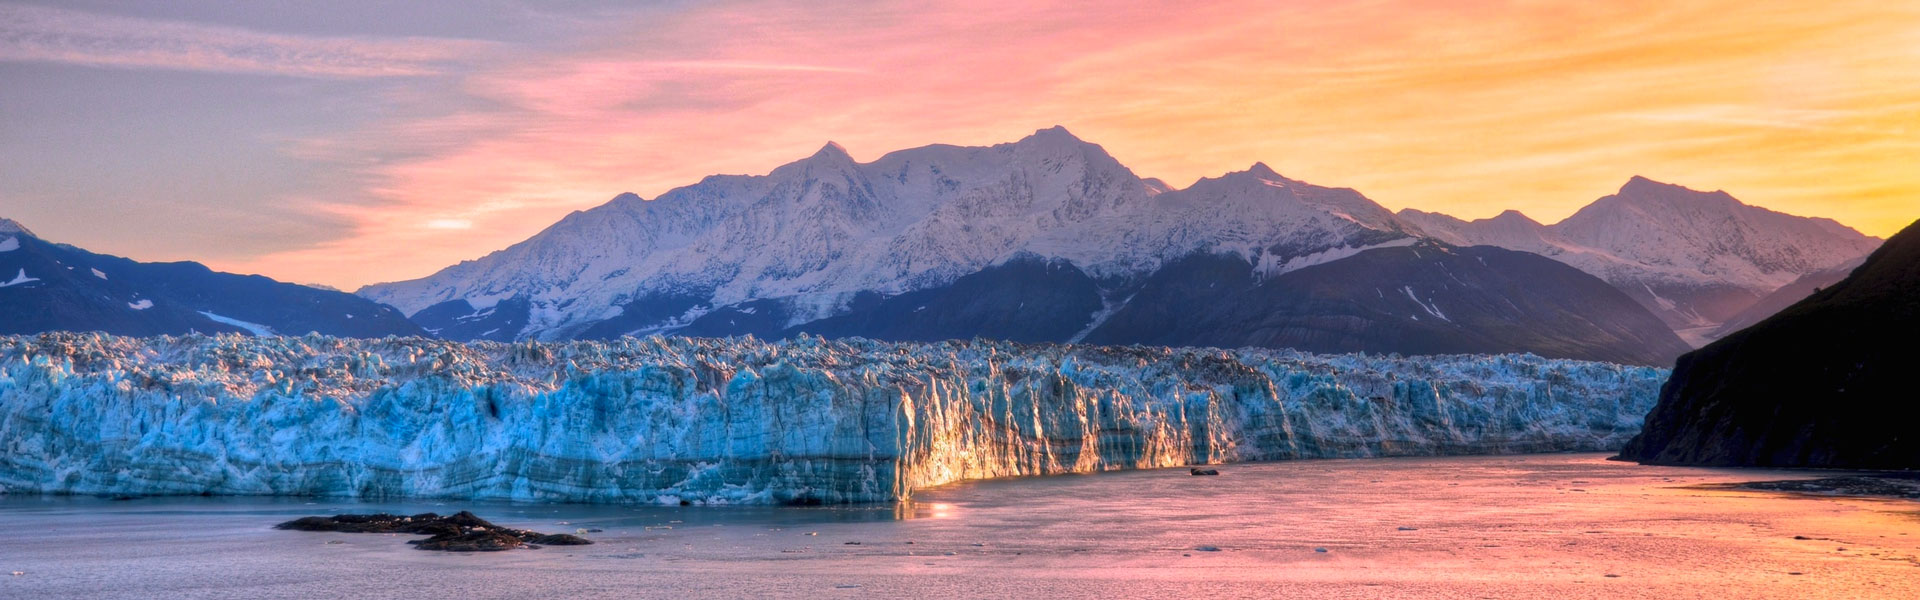 Prince William Sound | Prince William Sound Alaska Glacier at Sunset